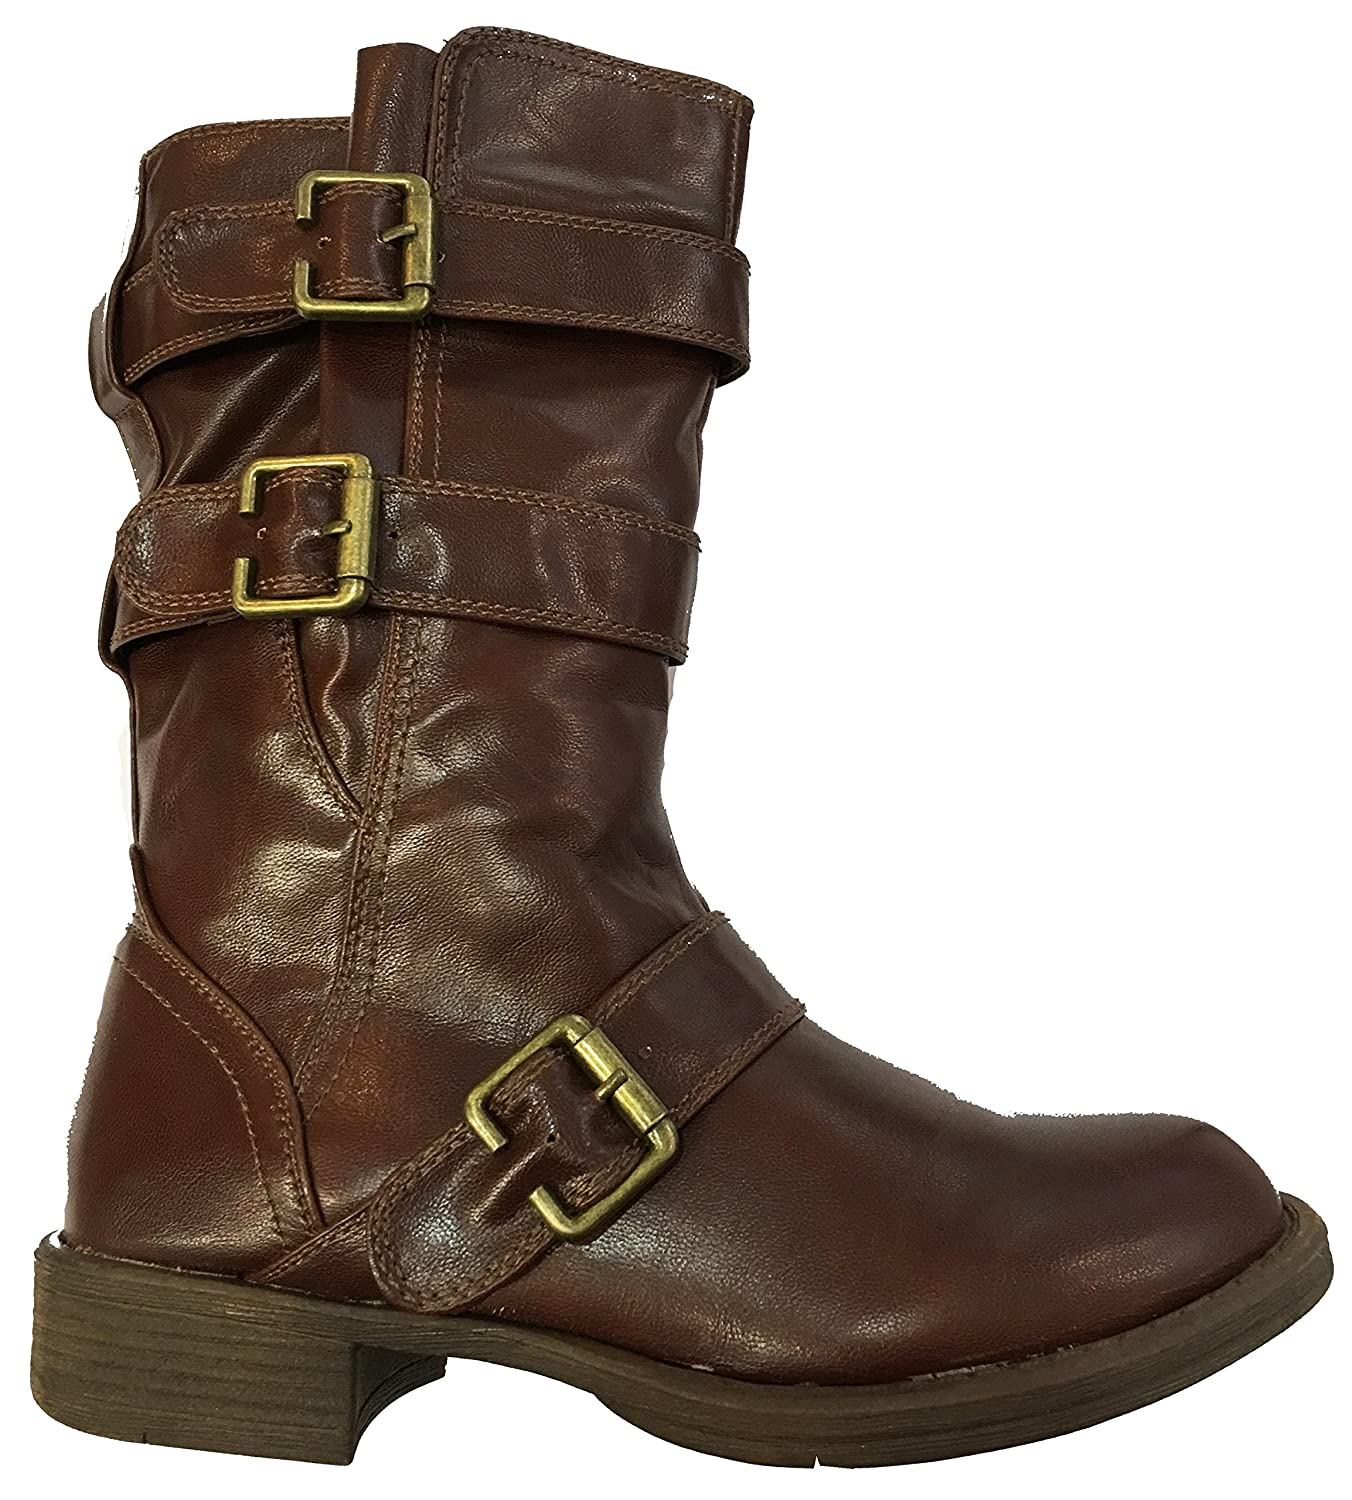 Manfield Damen flb431 Chestnut Damen Manfield Stiefel - 47e139